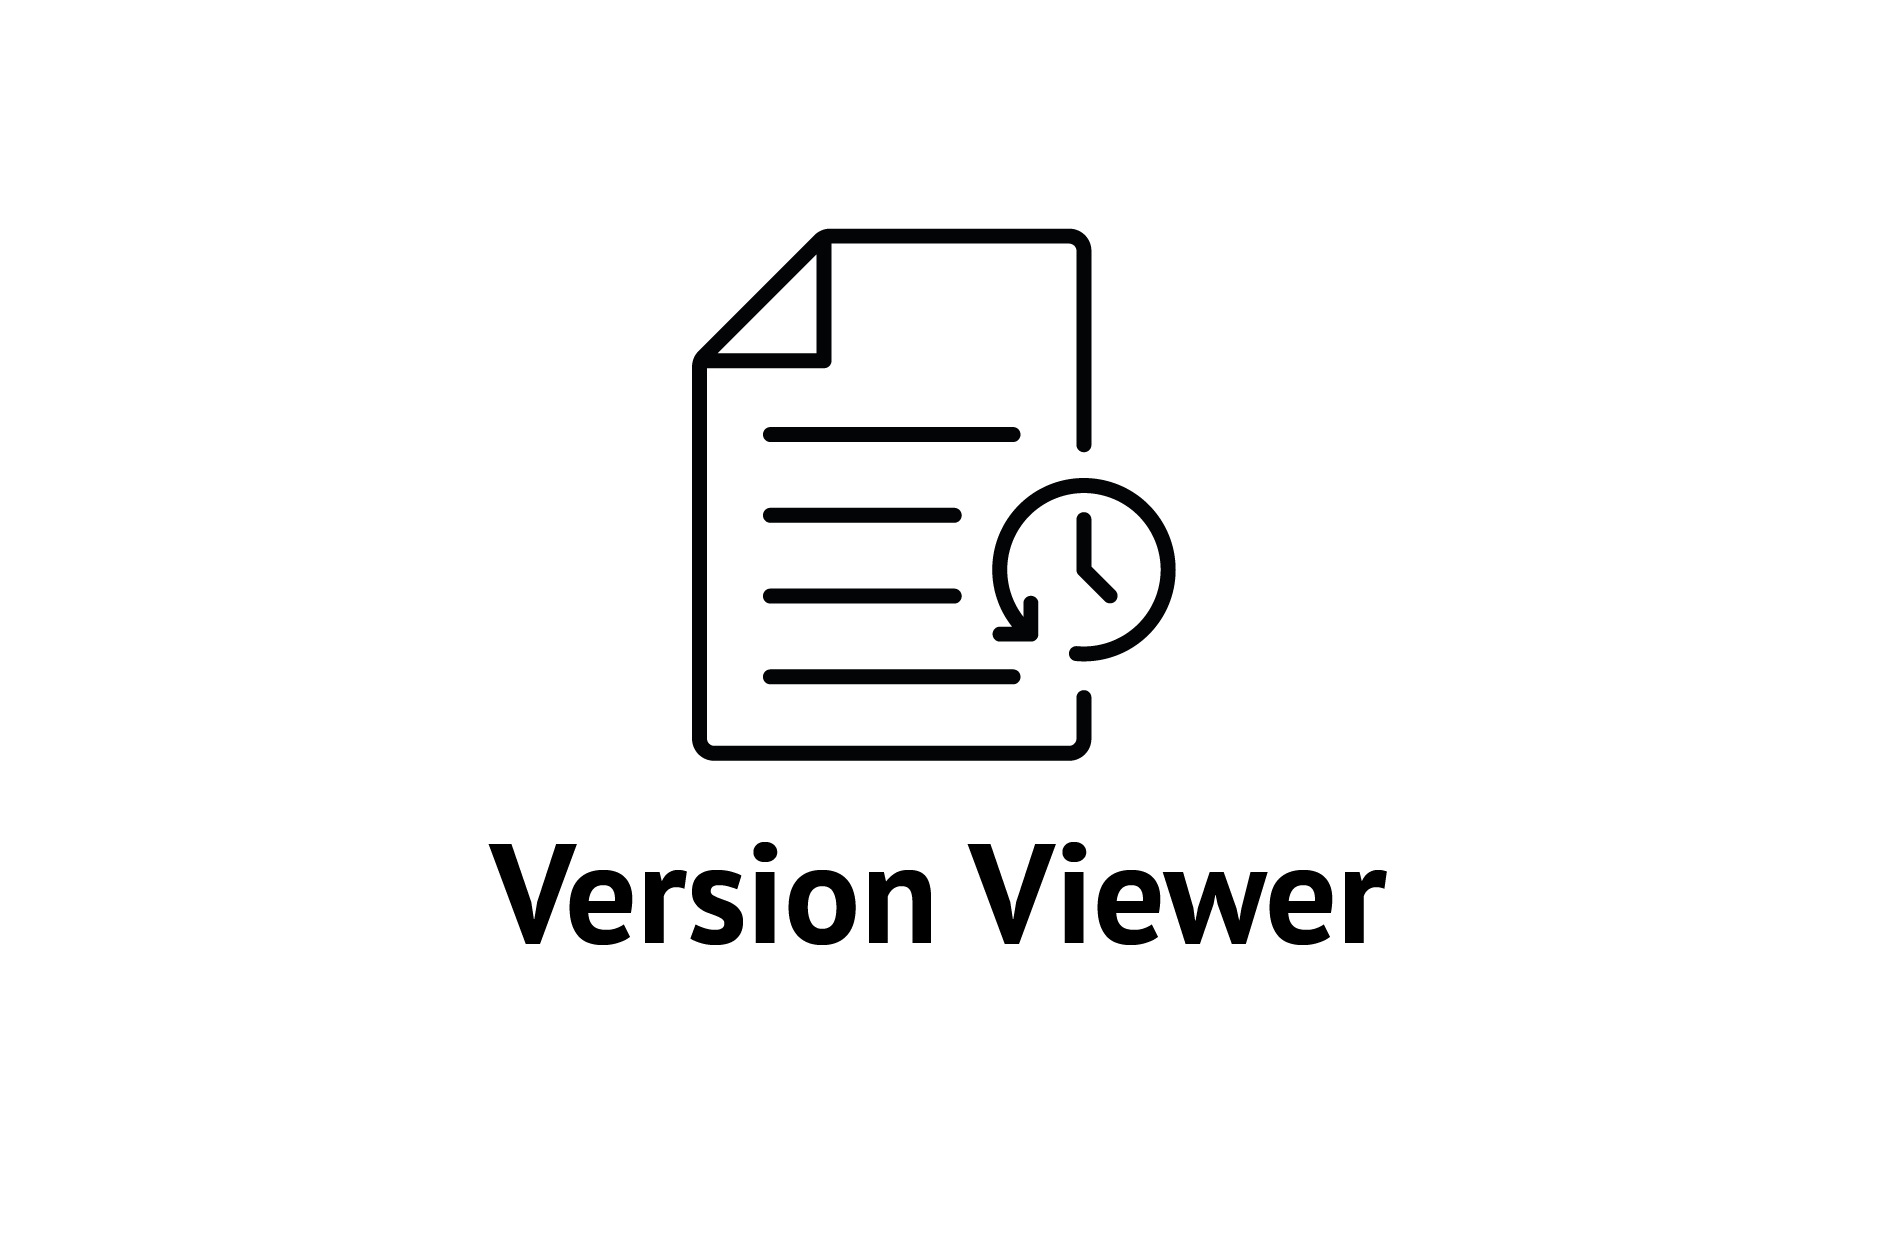 Version Viewer